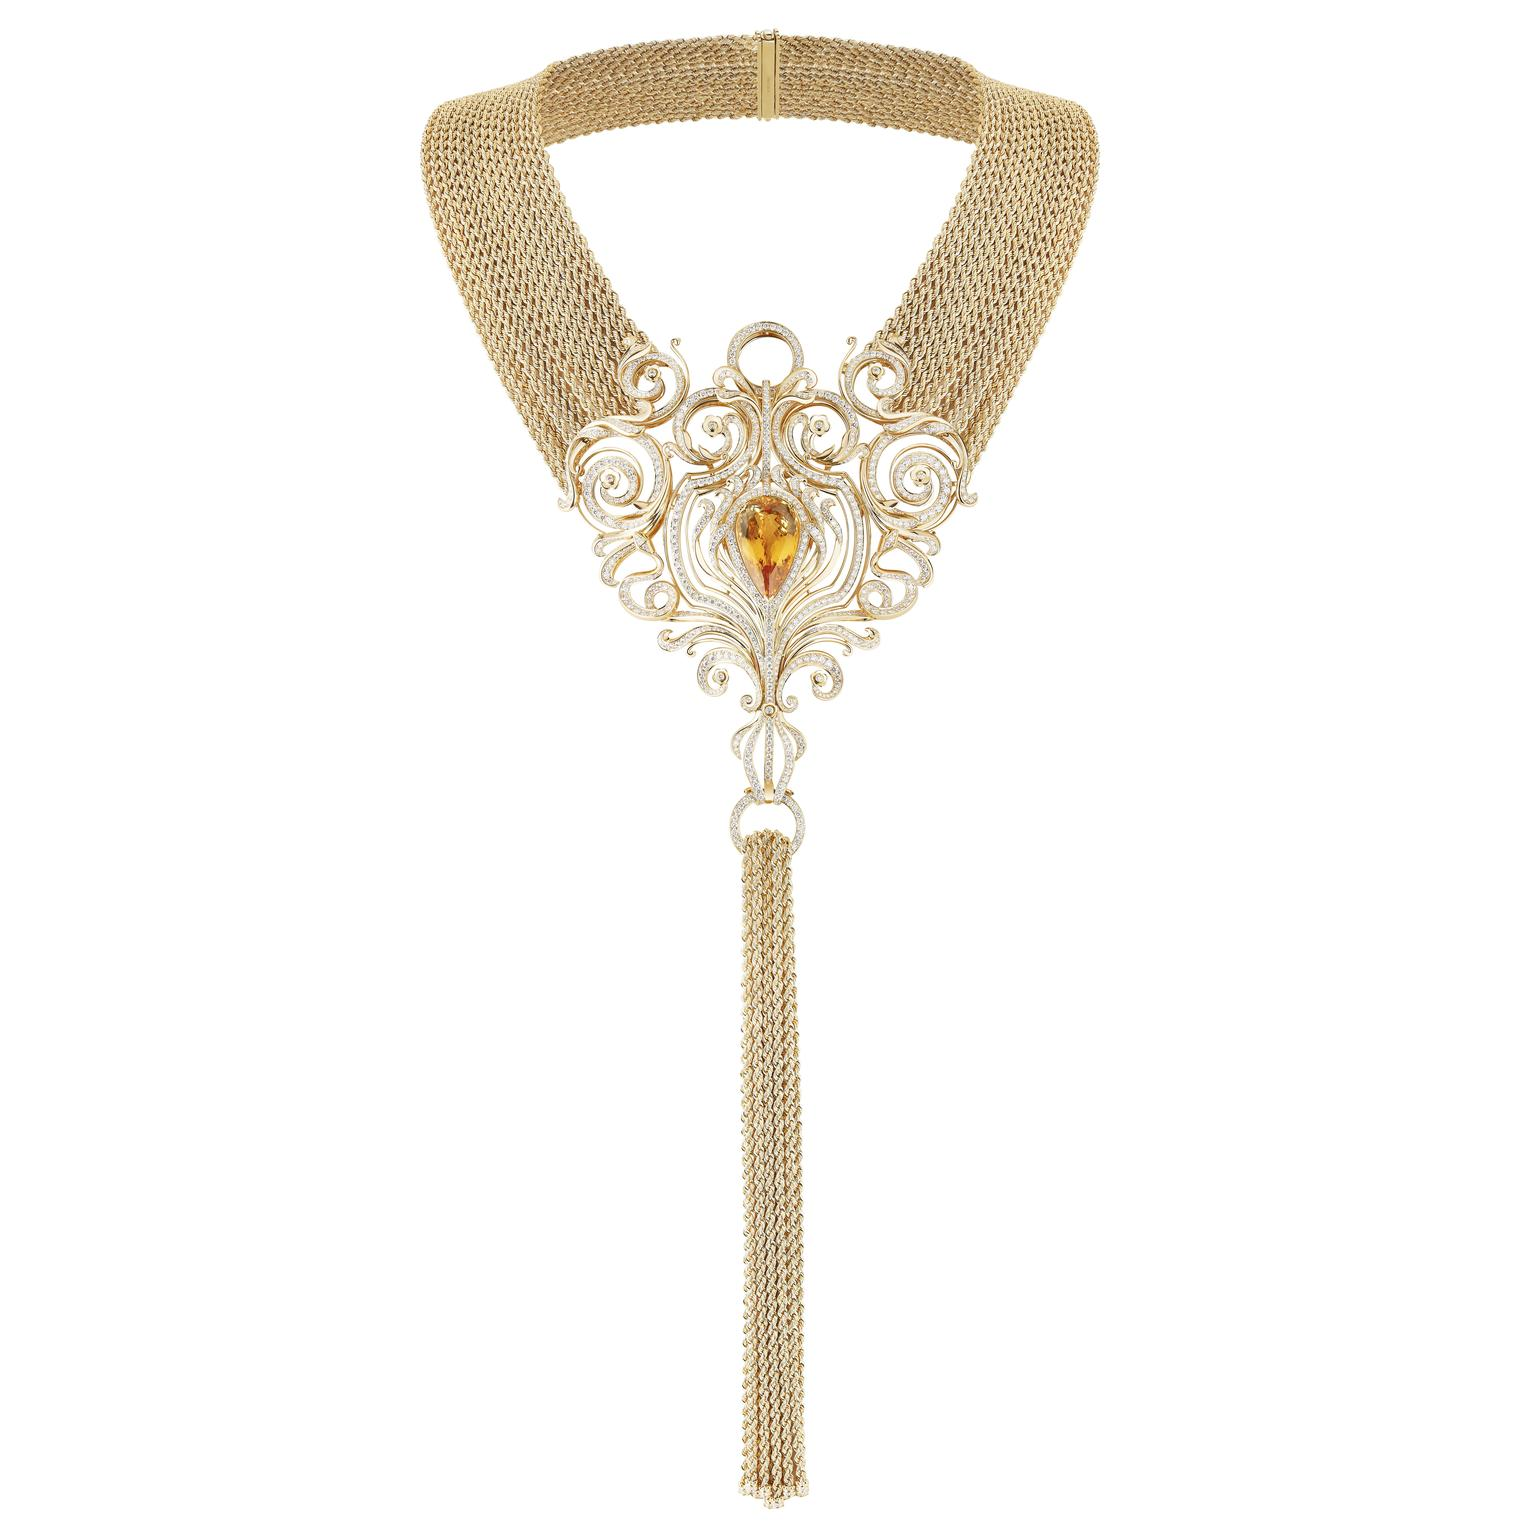 Boucheron Vu de 26 Armoire necklace